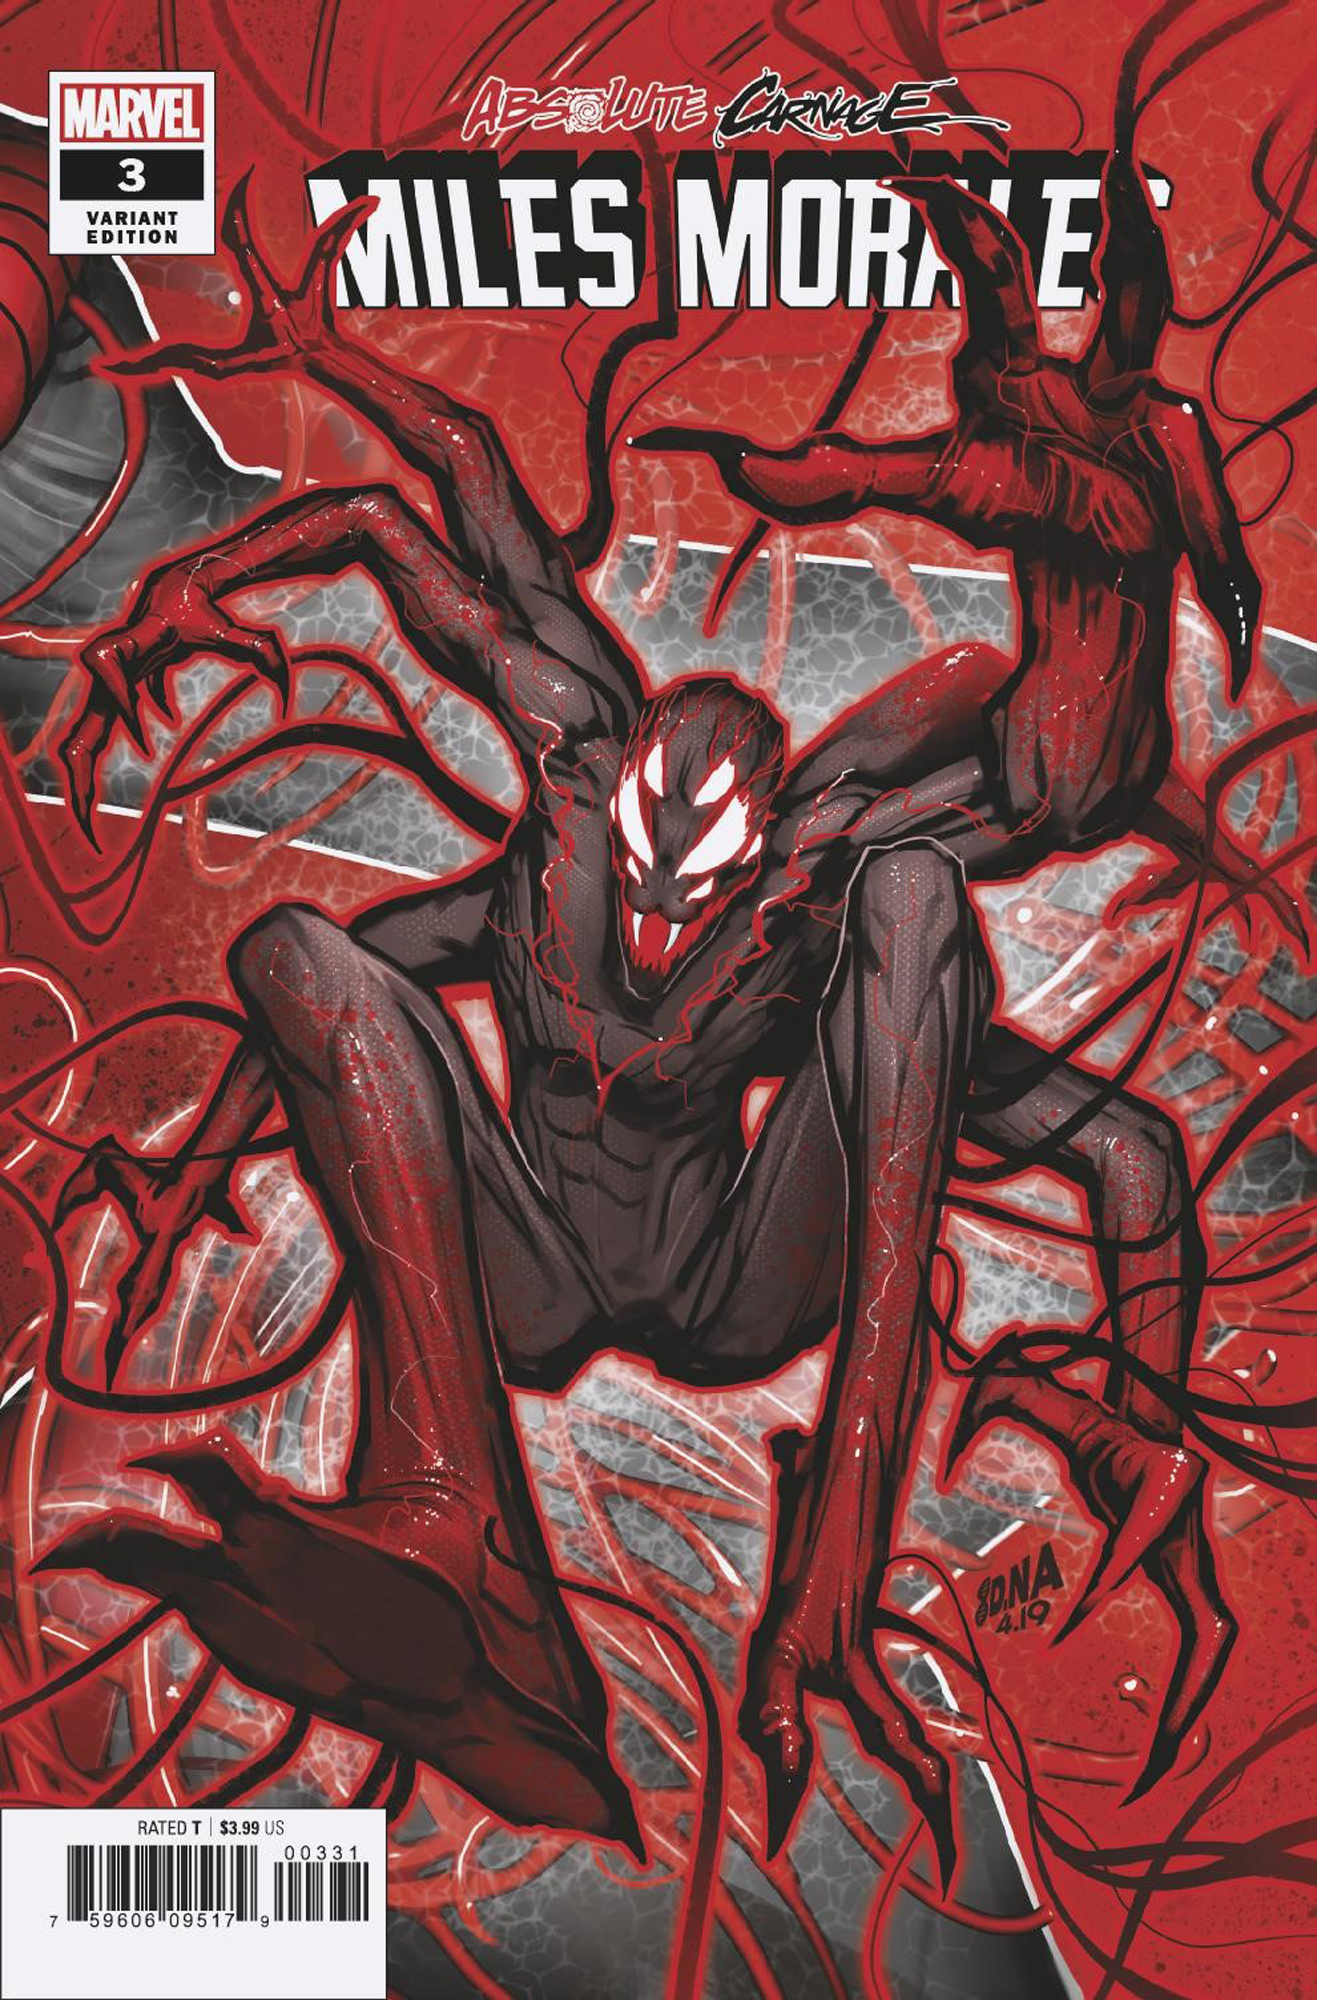 ABSOLUTE CARNAGE MILES MORALES #3 (OF 3) NAKAYAMA CONNECTING